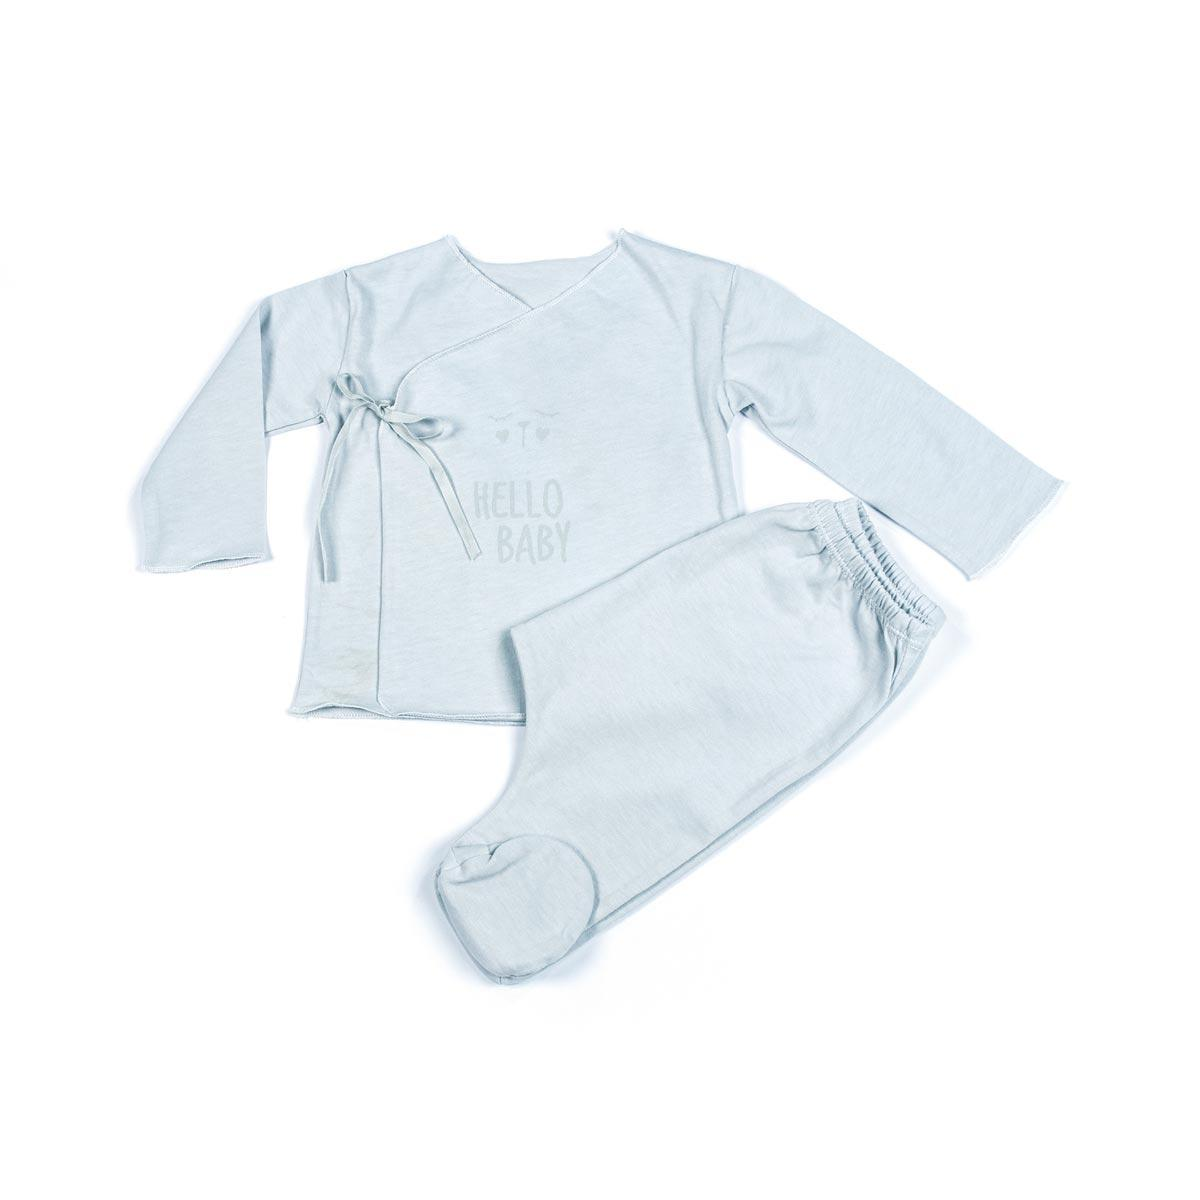 Camiseta y Polaina Hello Baby Walking Mum Gris